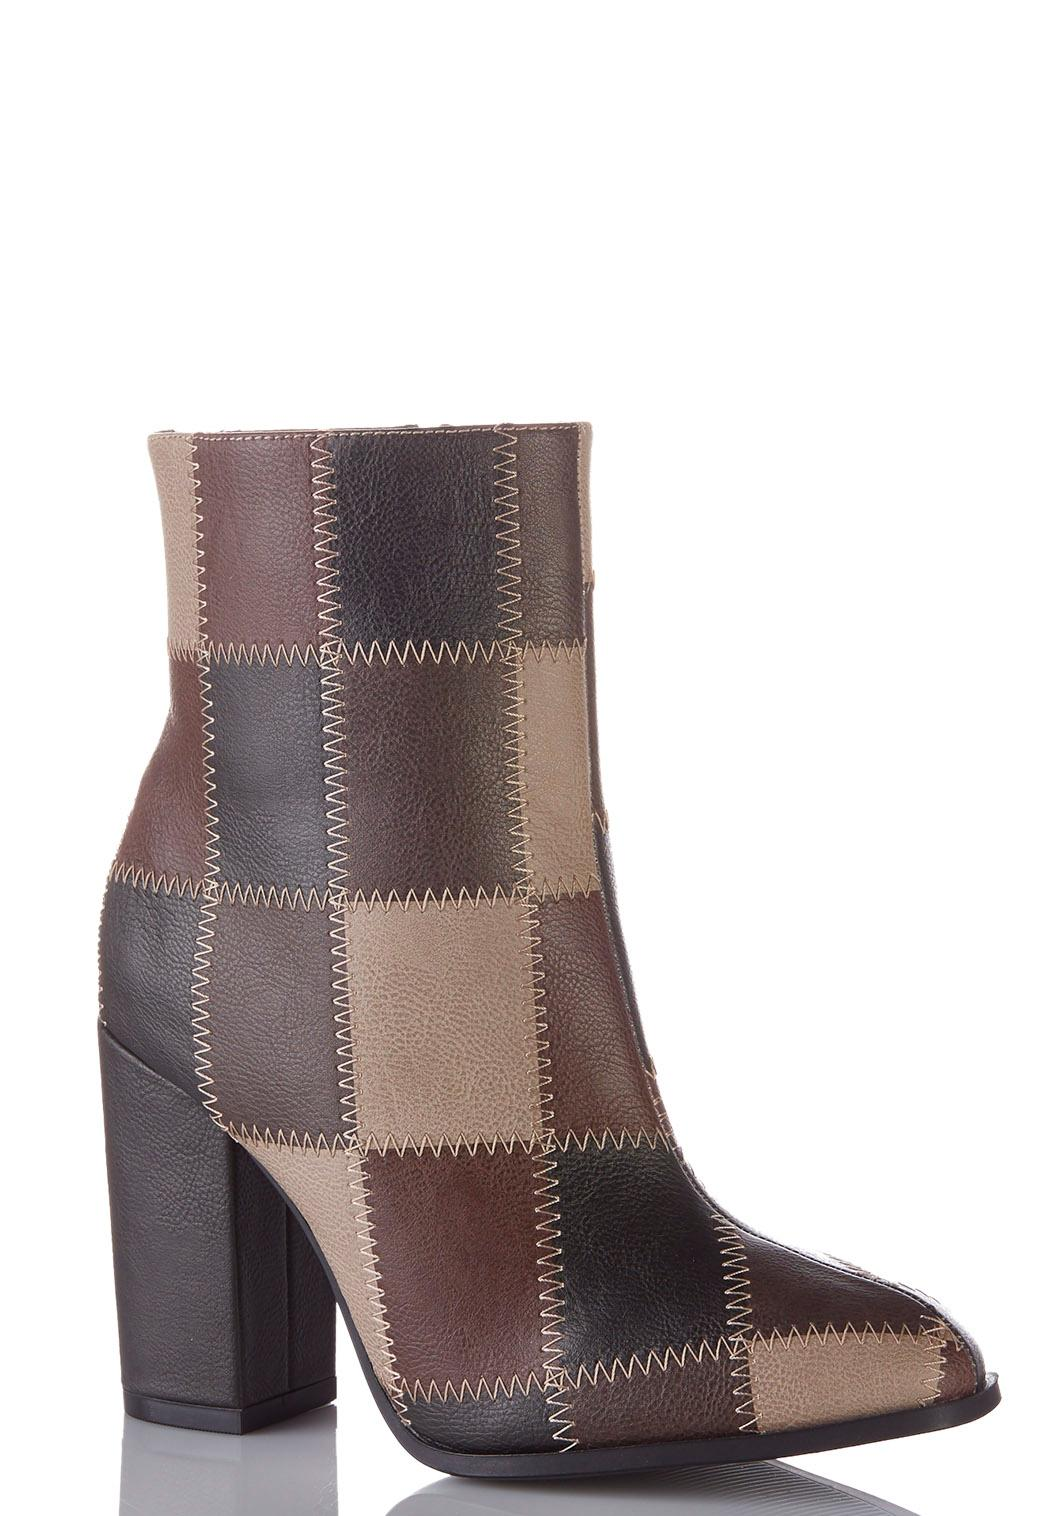 Patchwork Ankle Boots Ankle Amp Shooties Cato Fashions